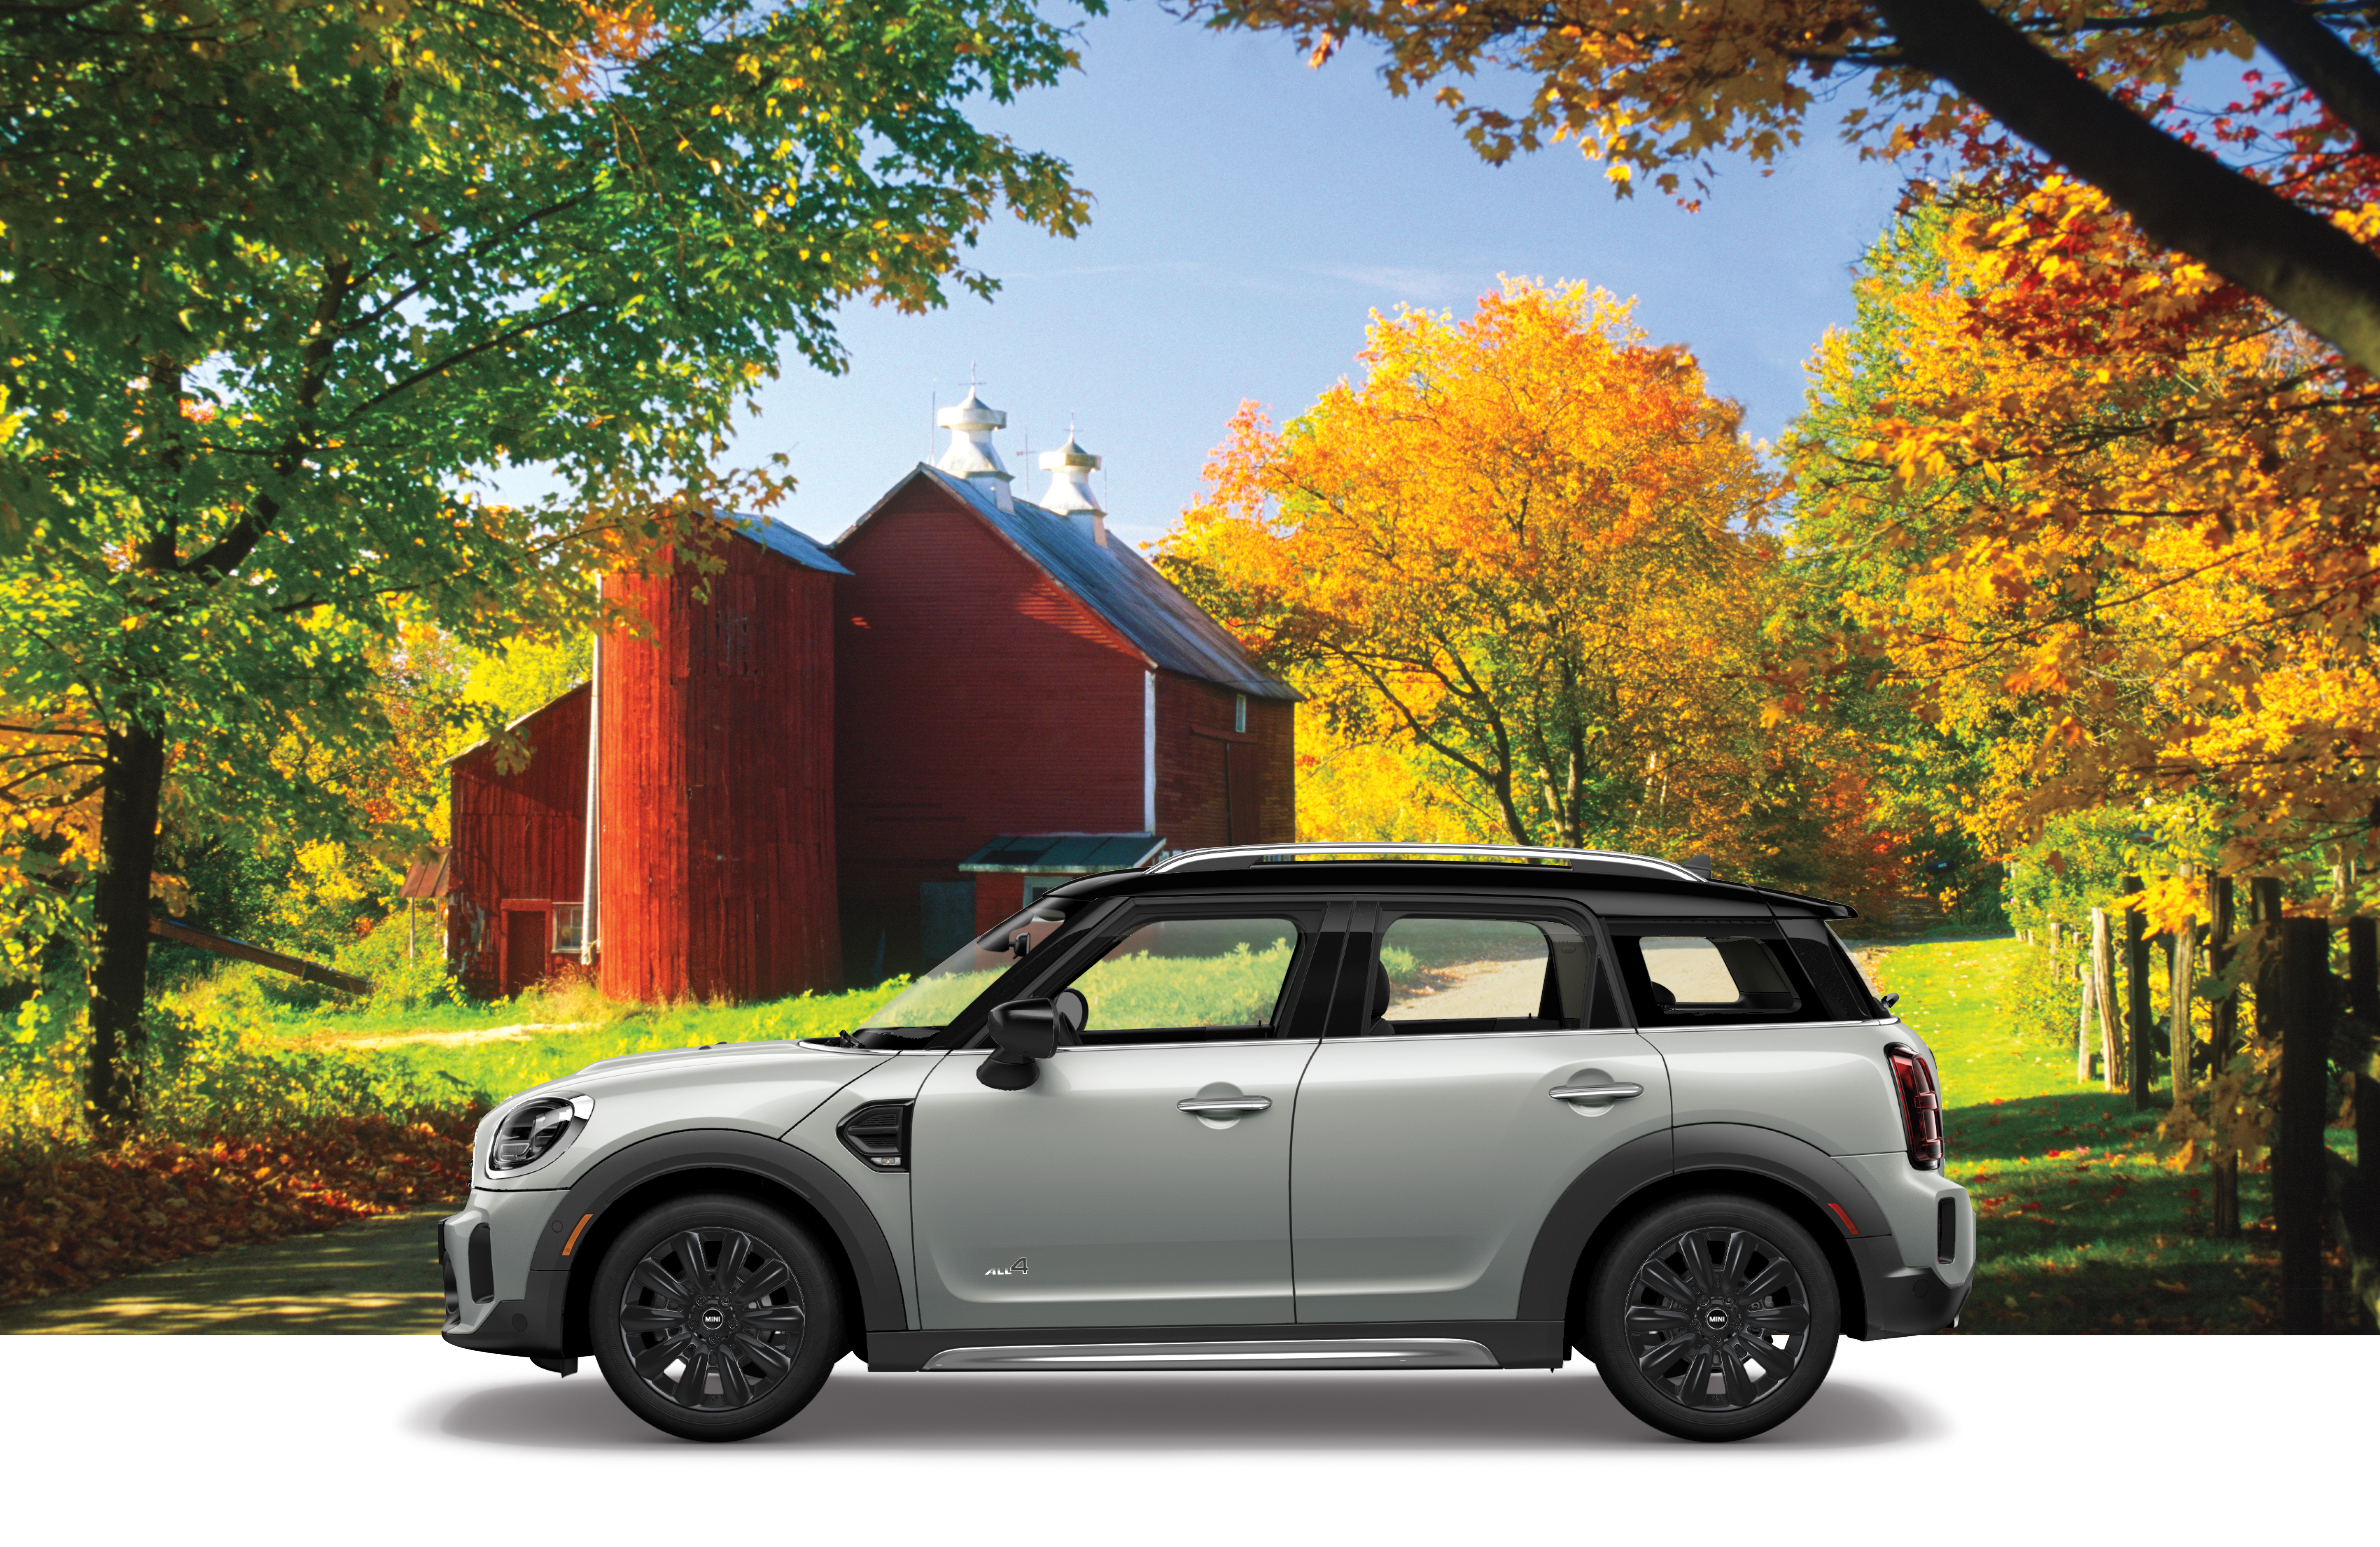 2021 Oxford Edition MINI Countryman